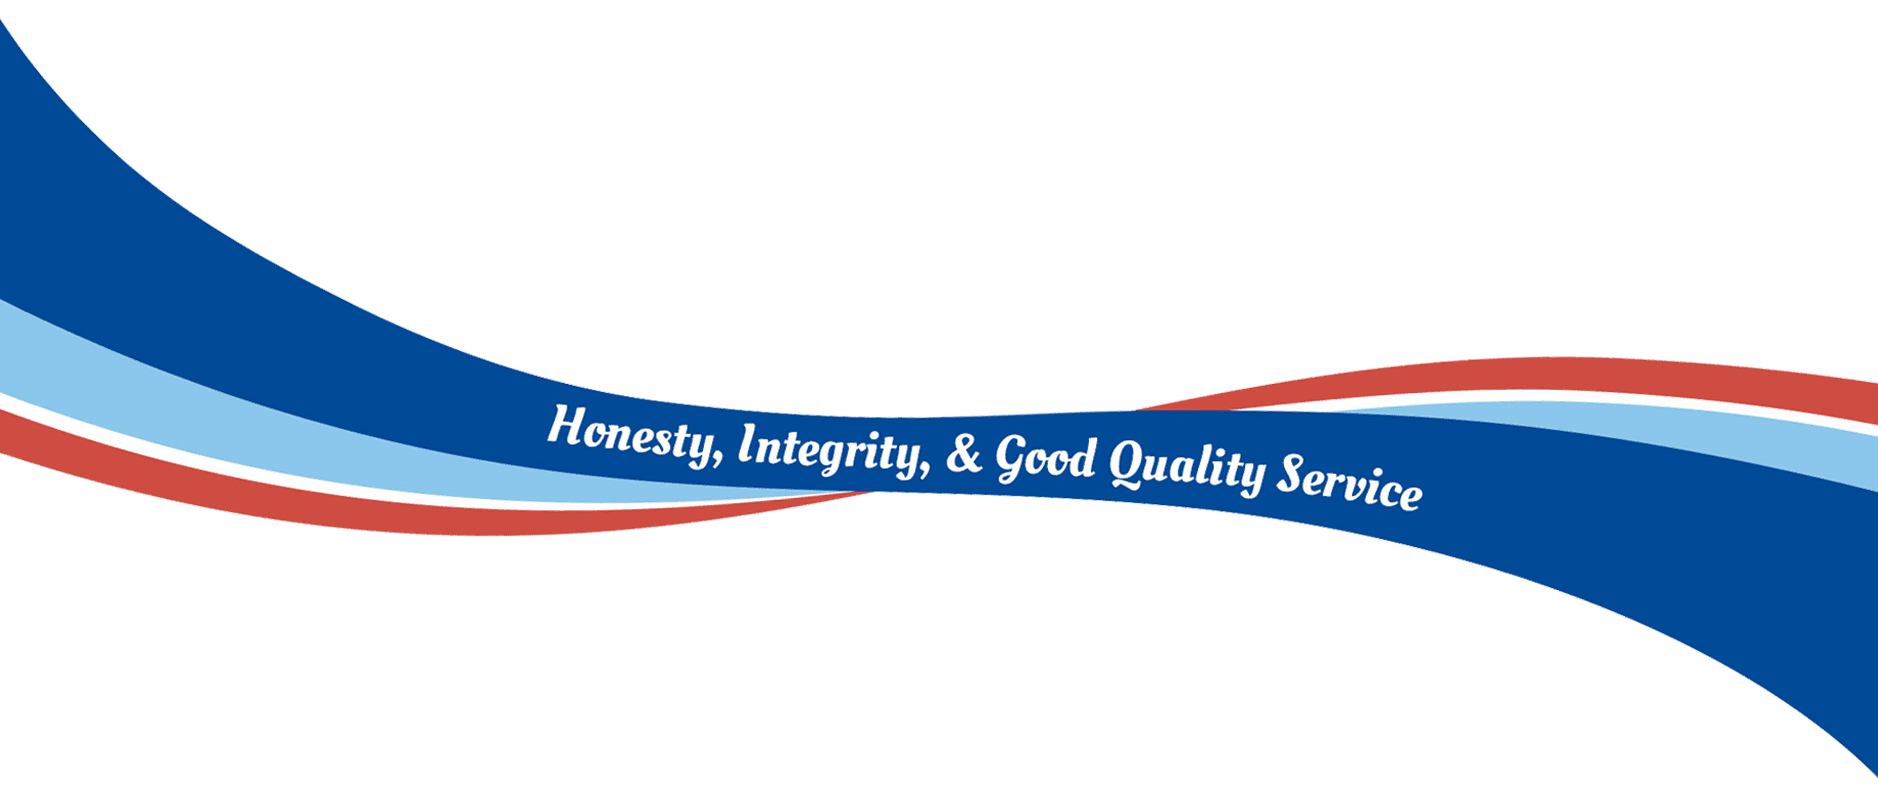 honesty-integrity-good-quality-service